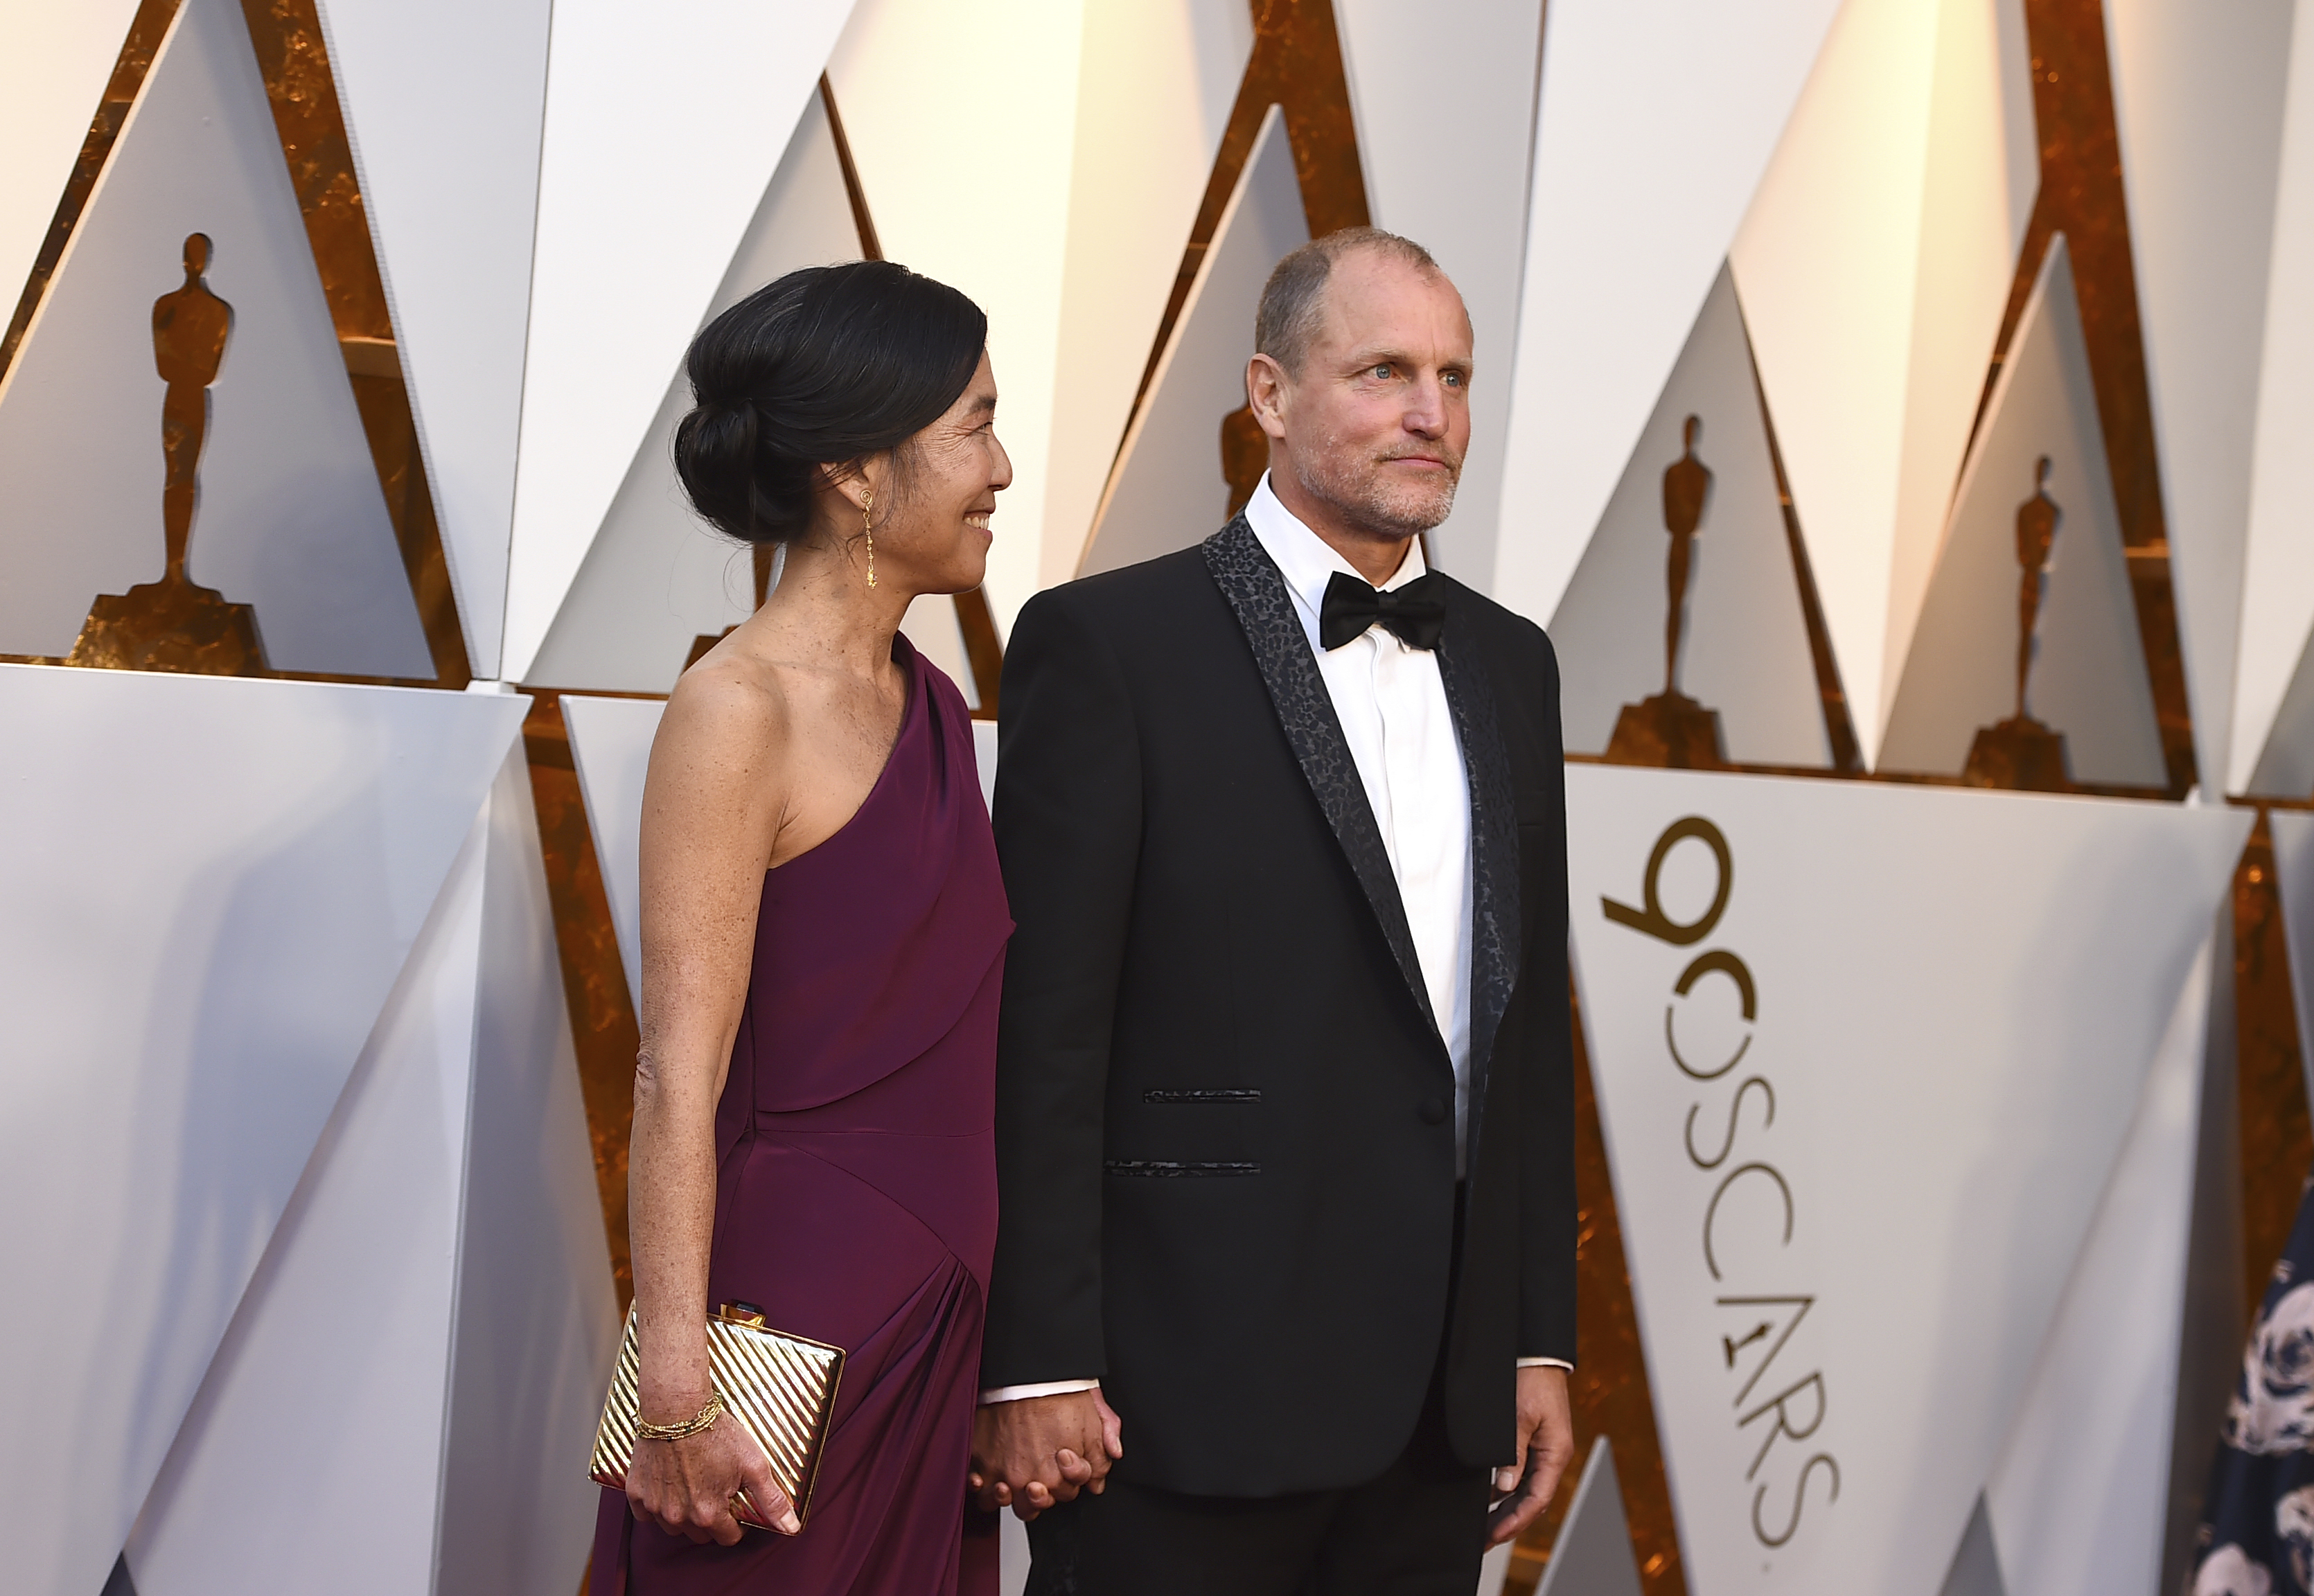 "<div class=""meta image-caption""><div class=""origin-logo origin-image none""><span>none</span></div><span class=""caption-text"">Laura Louie, left, and Woody Harrelson (nominated for Best Supporting Actor for ''Three Billboards Outside Ebbing, Missouri'') arrive at the Oscars. (Jordan Strauss/Invision/AP)</span></div>"